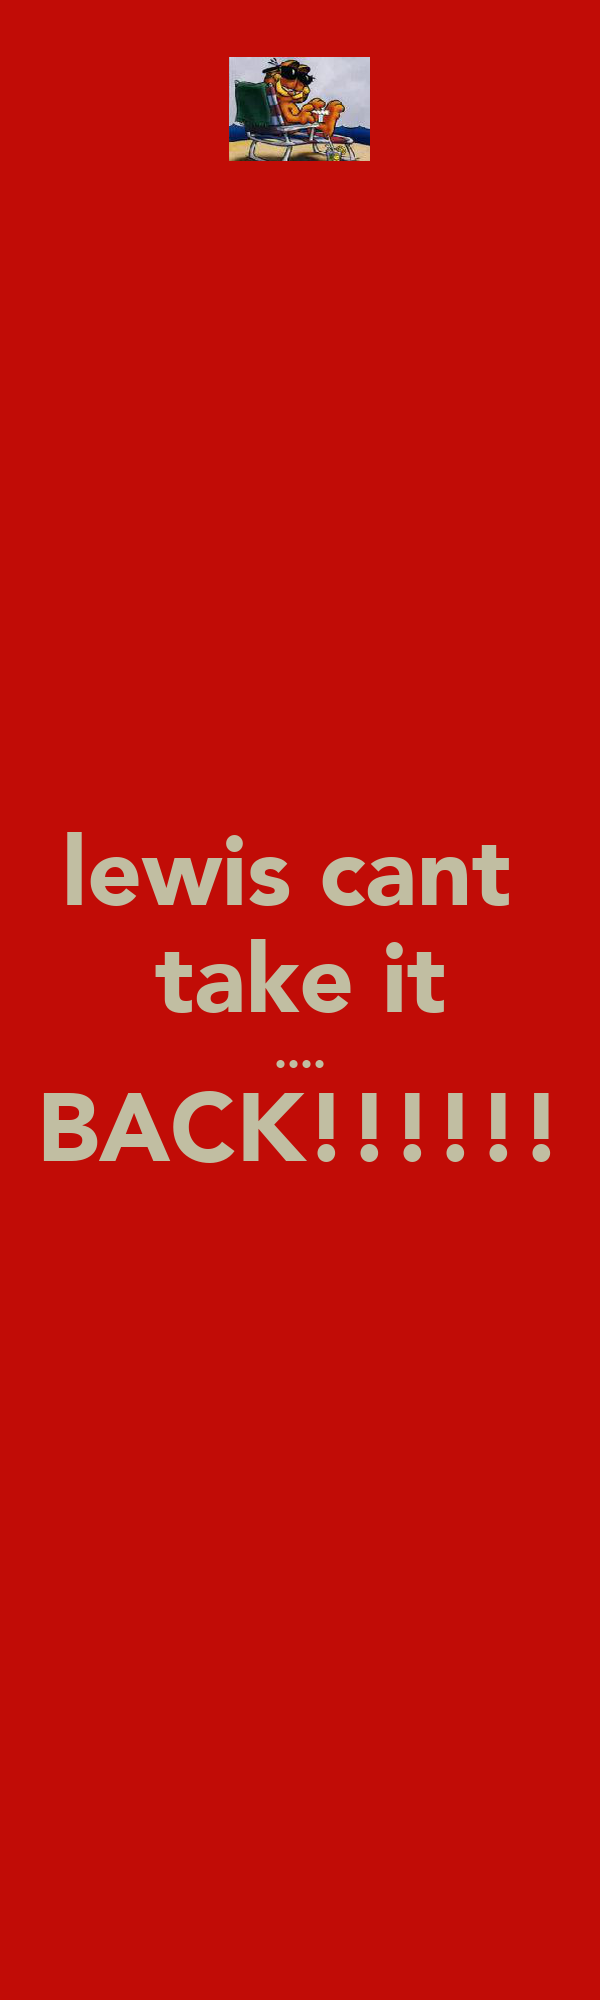 lewis cant  take it .... BACK!!!!!!